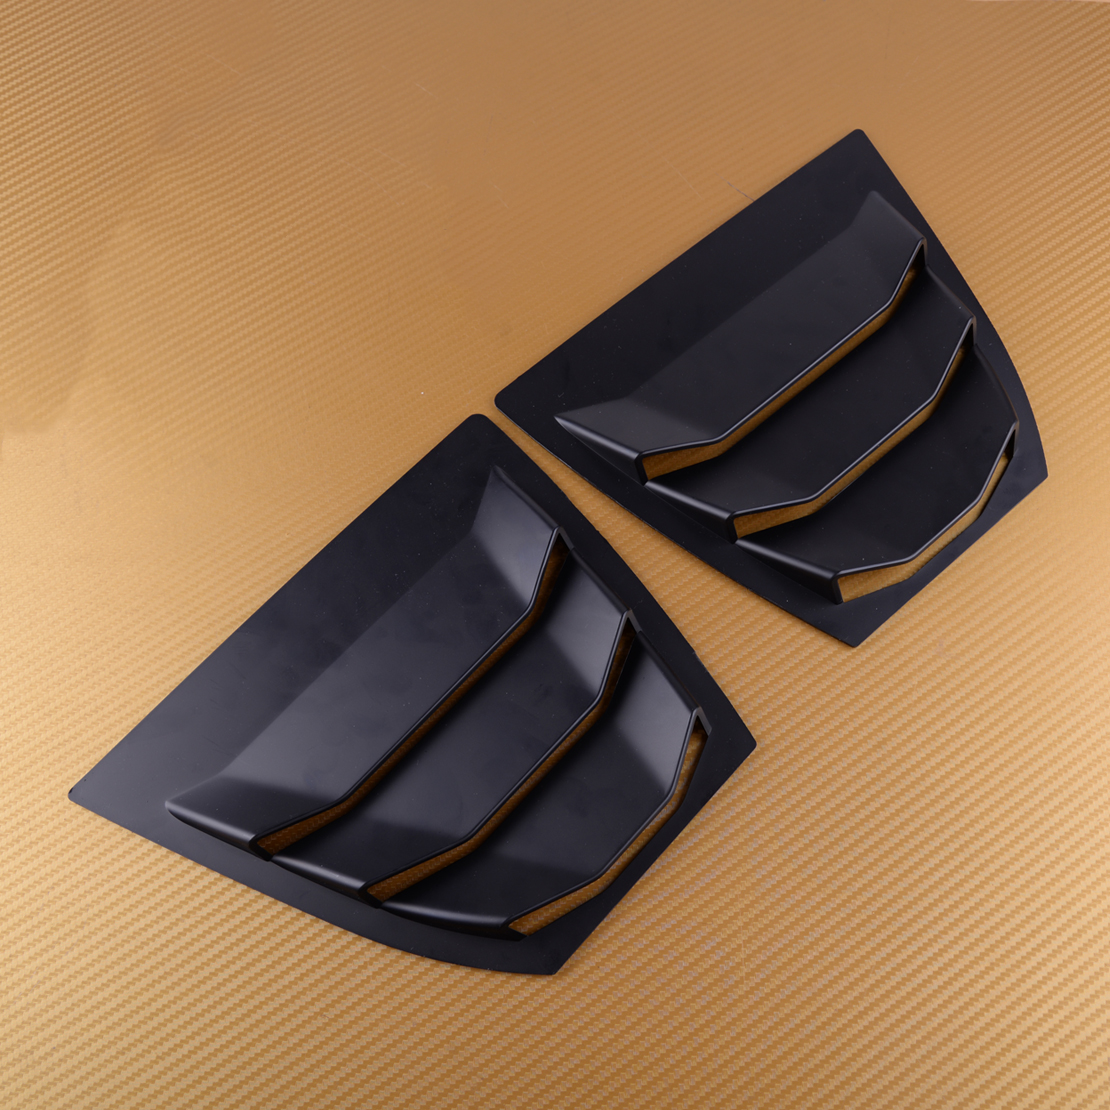 CITALL Black ABS Rear Side <font><b>Window</b></font> Louver Vent Trim Panel Stickers Cover Car Styling Fit For <font><b>Mazda</b></font> <font><b>3</b></font> Axela 2014 <font><b>2015</b></font> 2016 2017 image